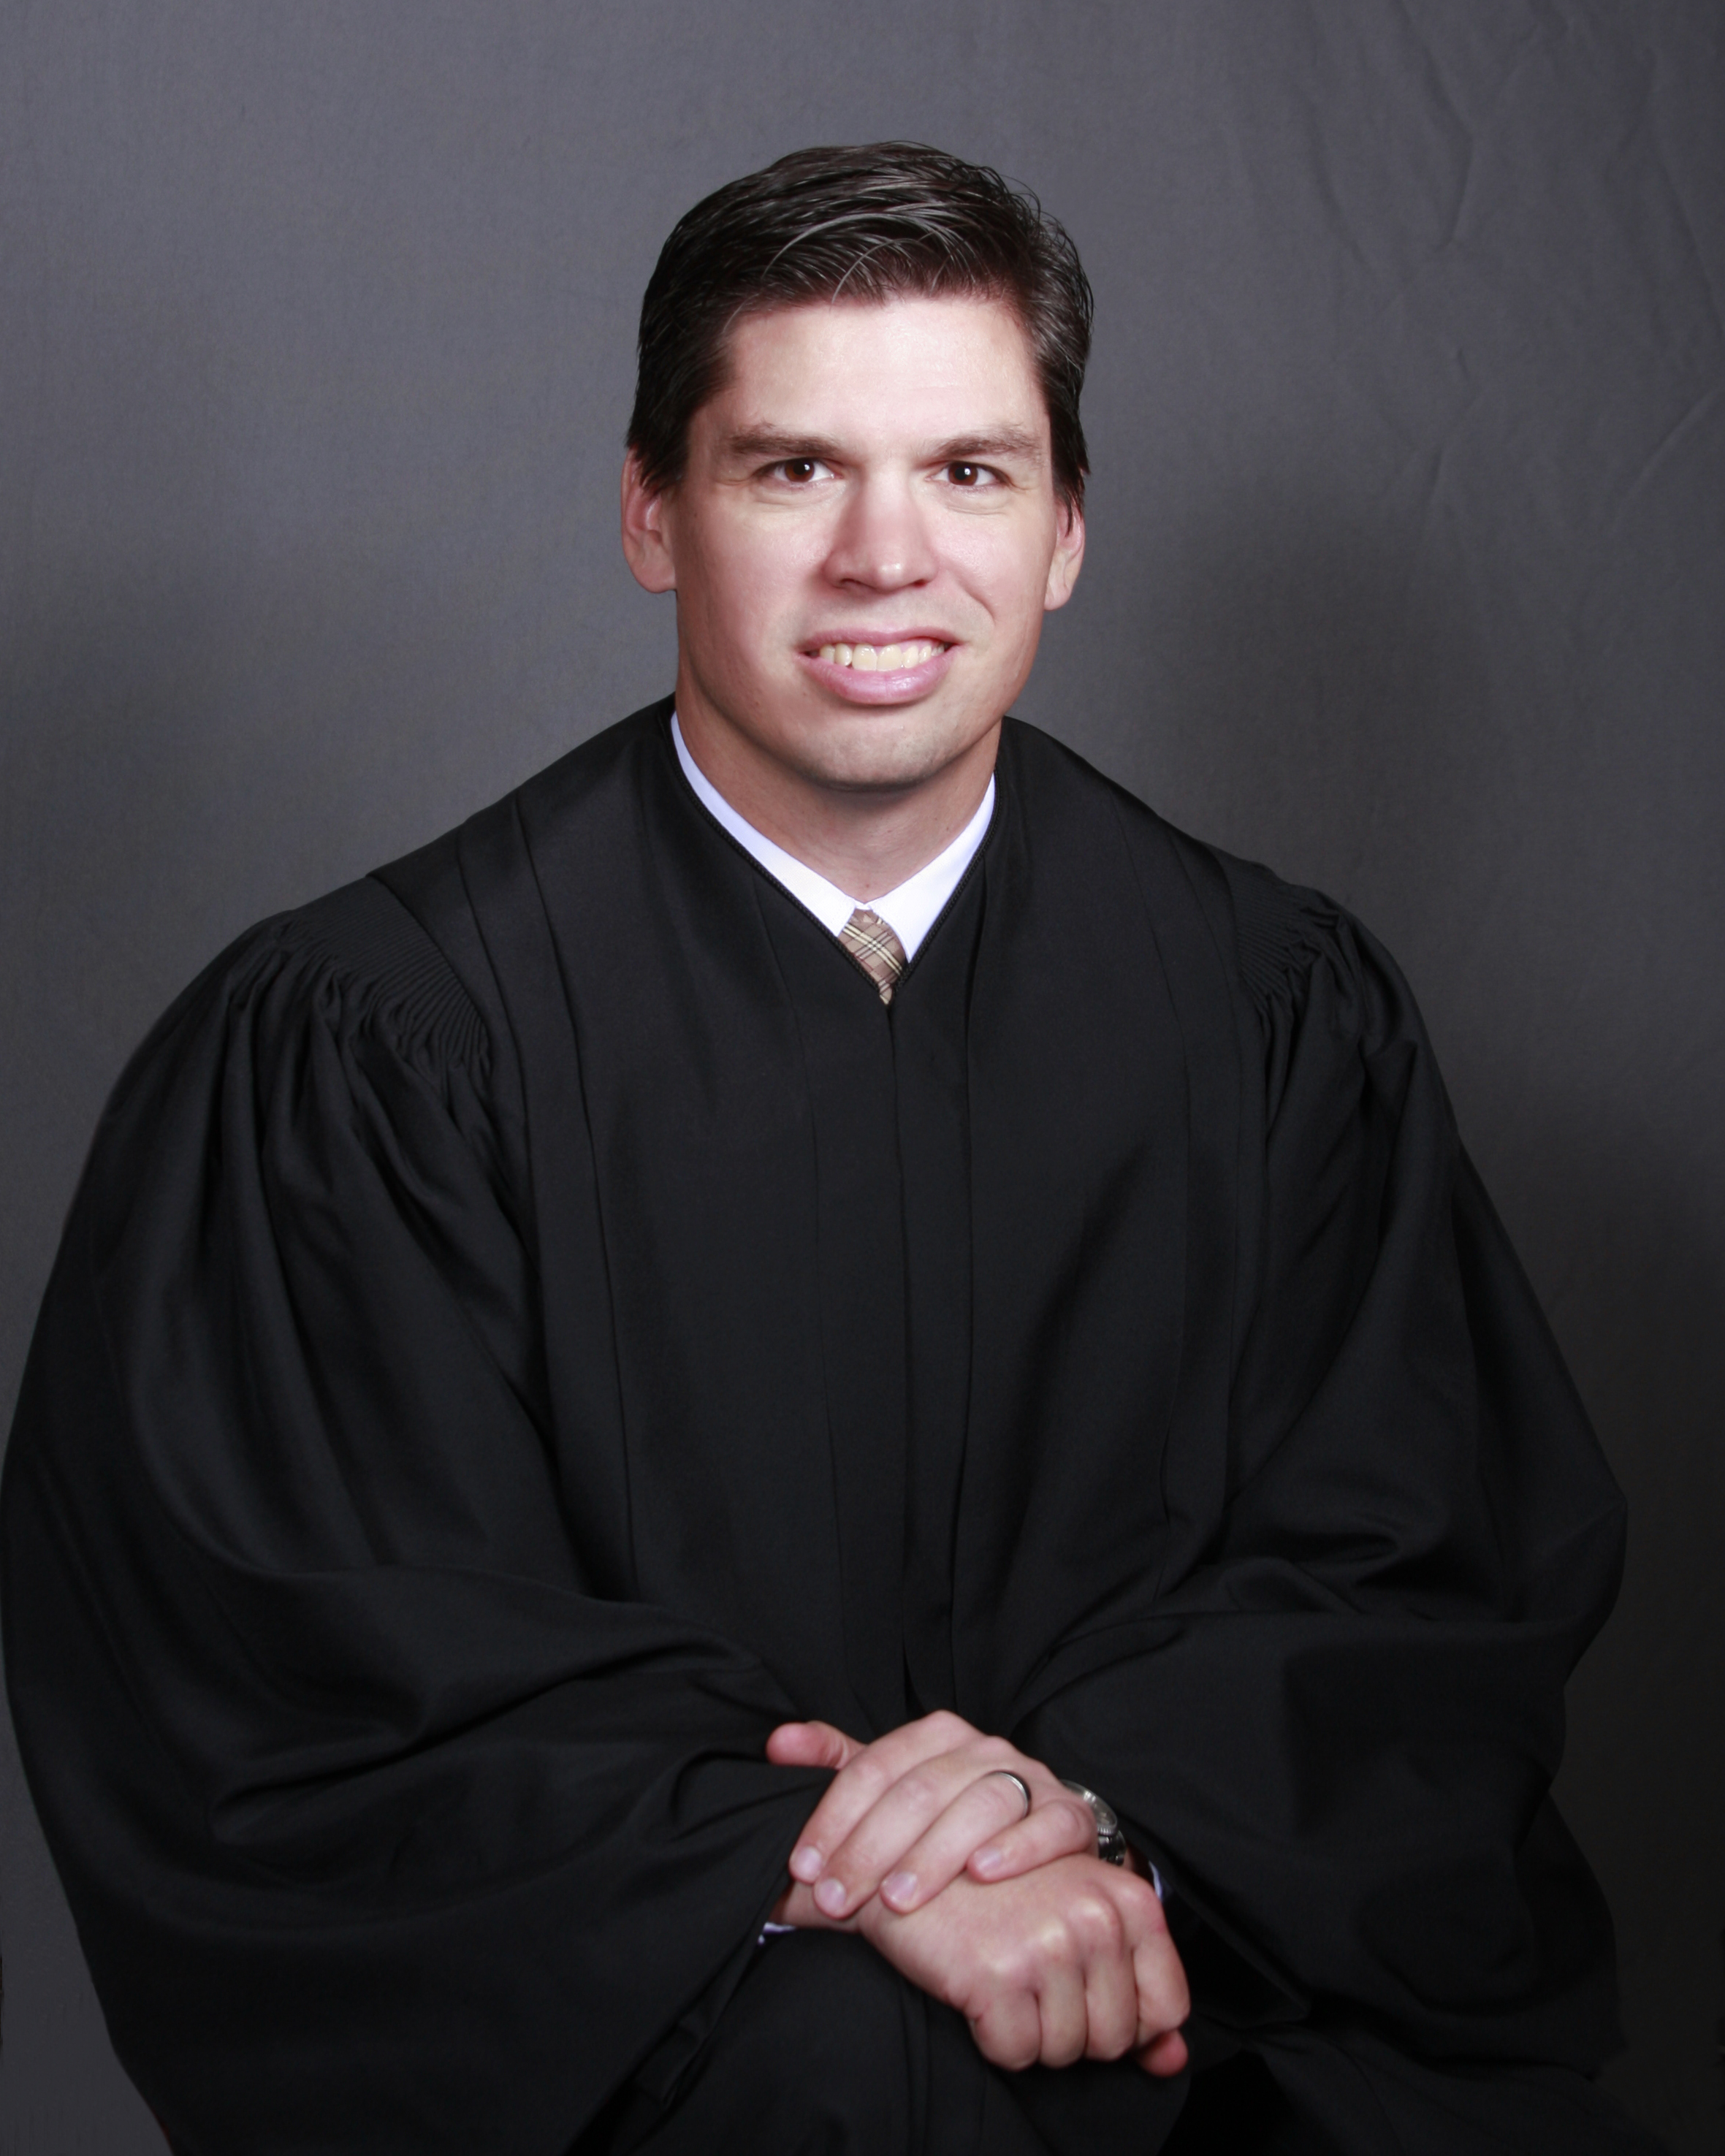 District judge 174th judicial district -  Honorable Baylor Wortham Honorable Baylor Wortham Presiding 136th Civil District Court